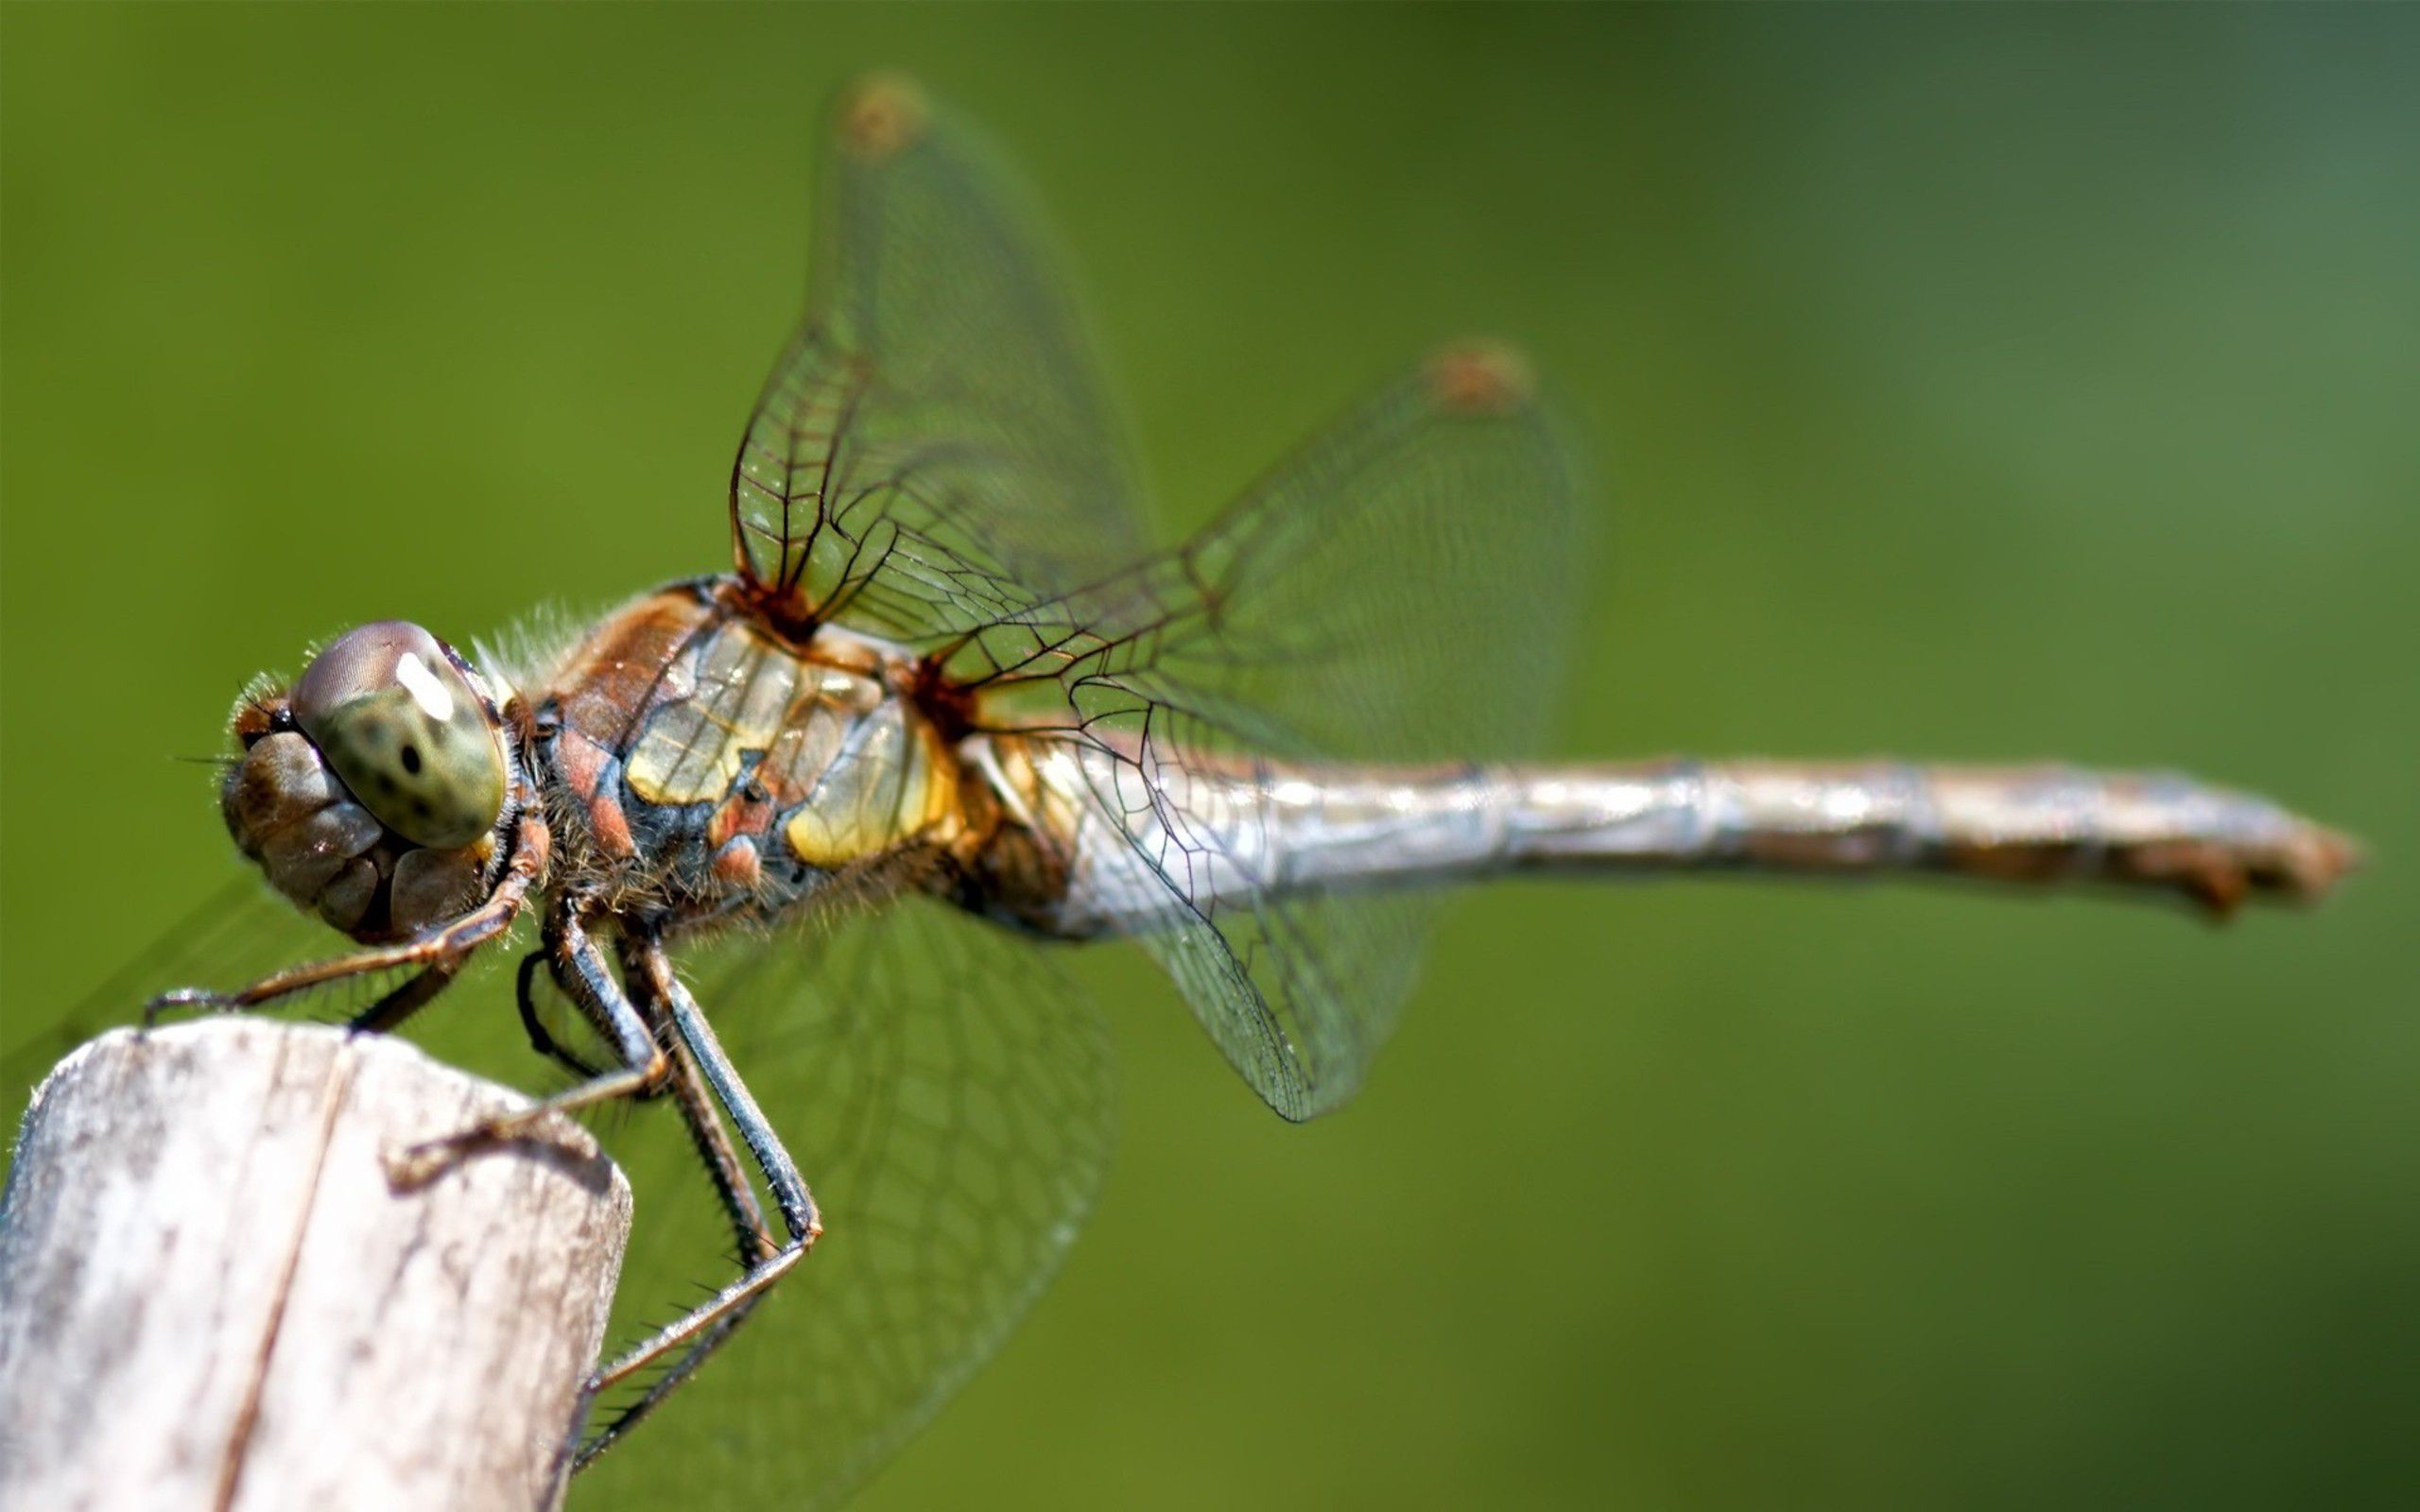 Dragonfly Macro Wallpaper Download Wallpaper with 2560x1600 2560x1600